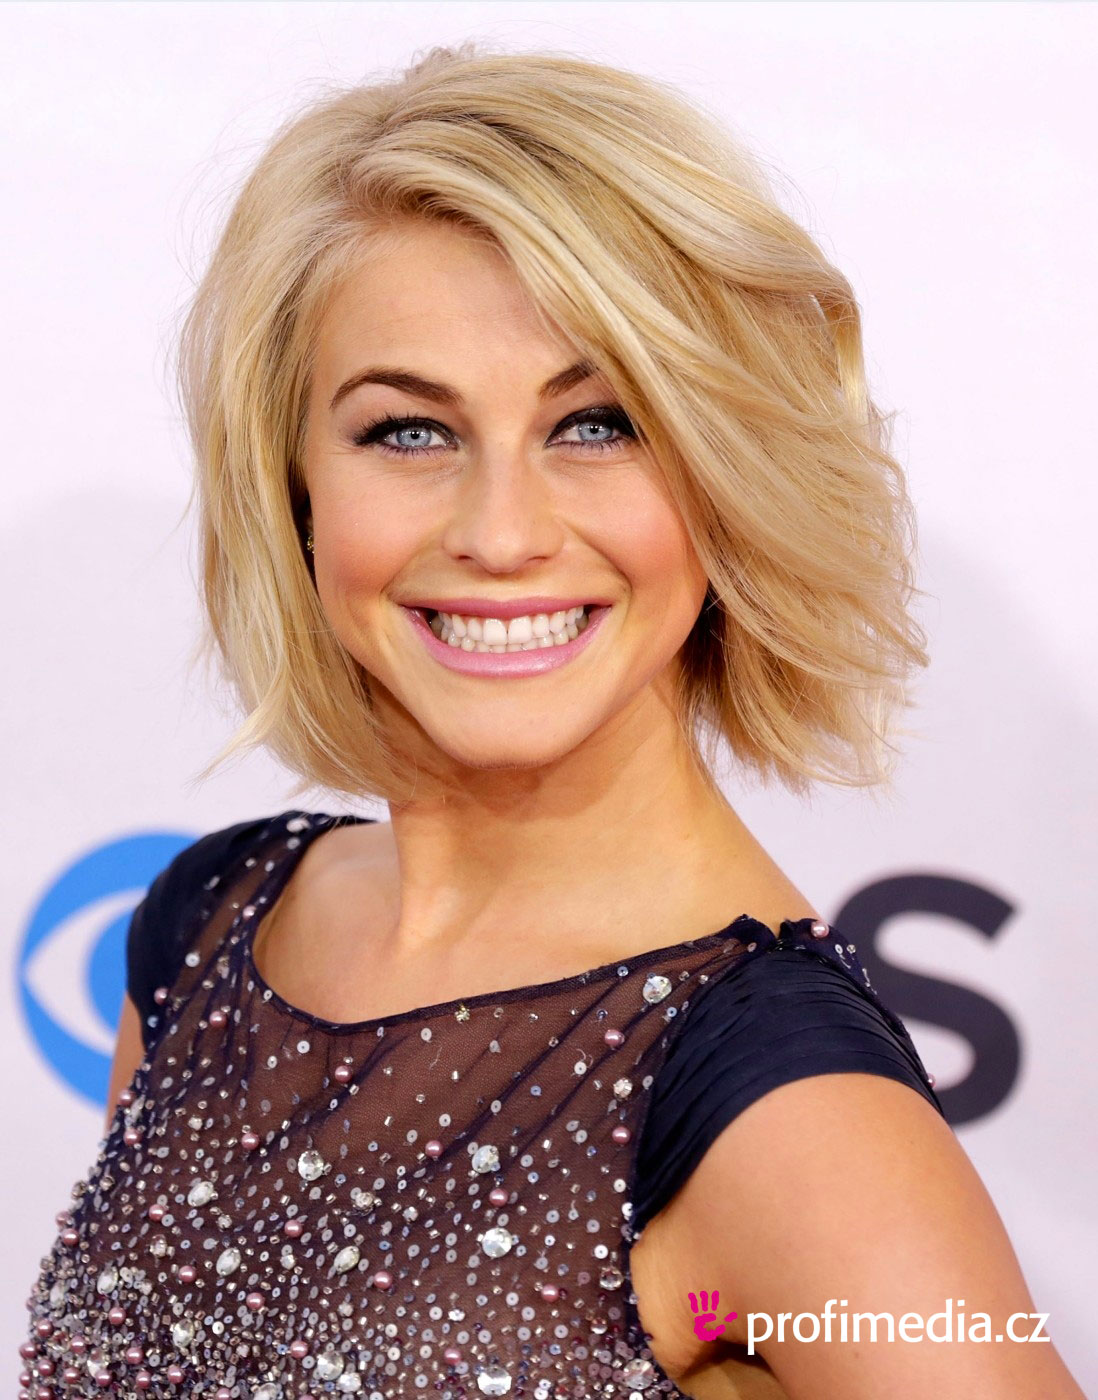 Julianne Hough Frisur Zum Ausprobieren In Efrisuren